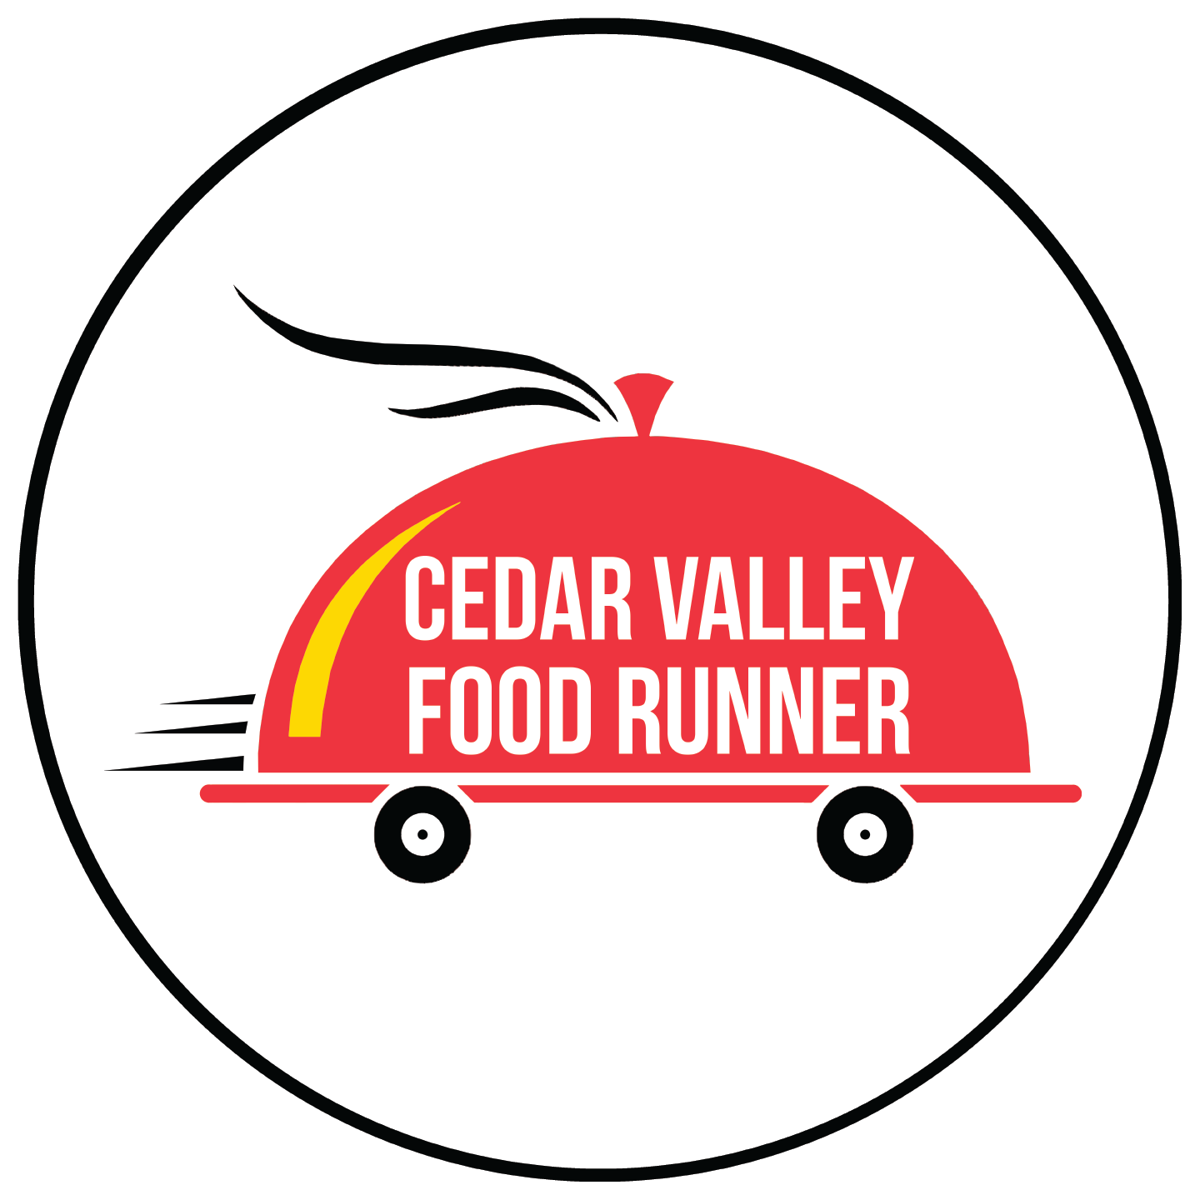 Cedar Valley Food Runner logo